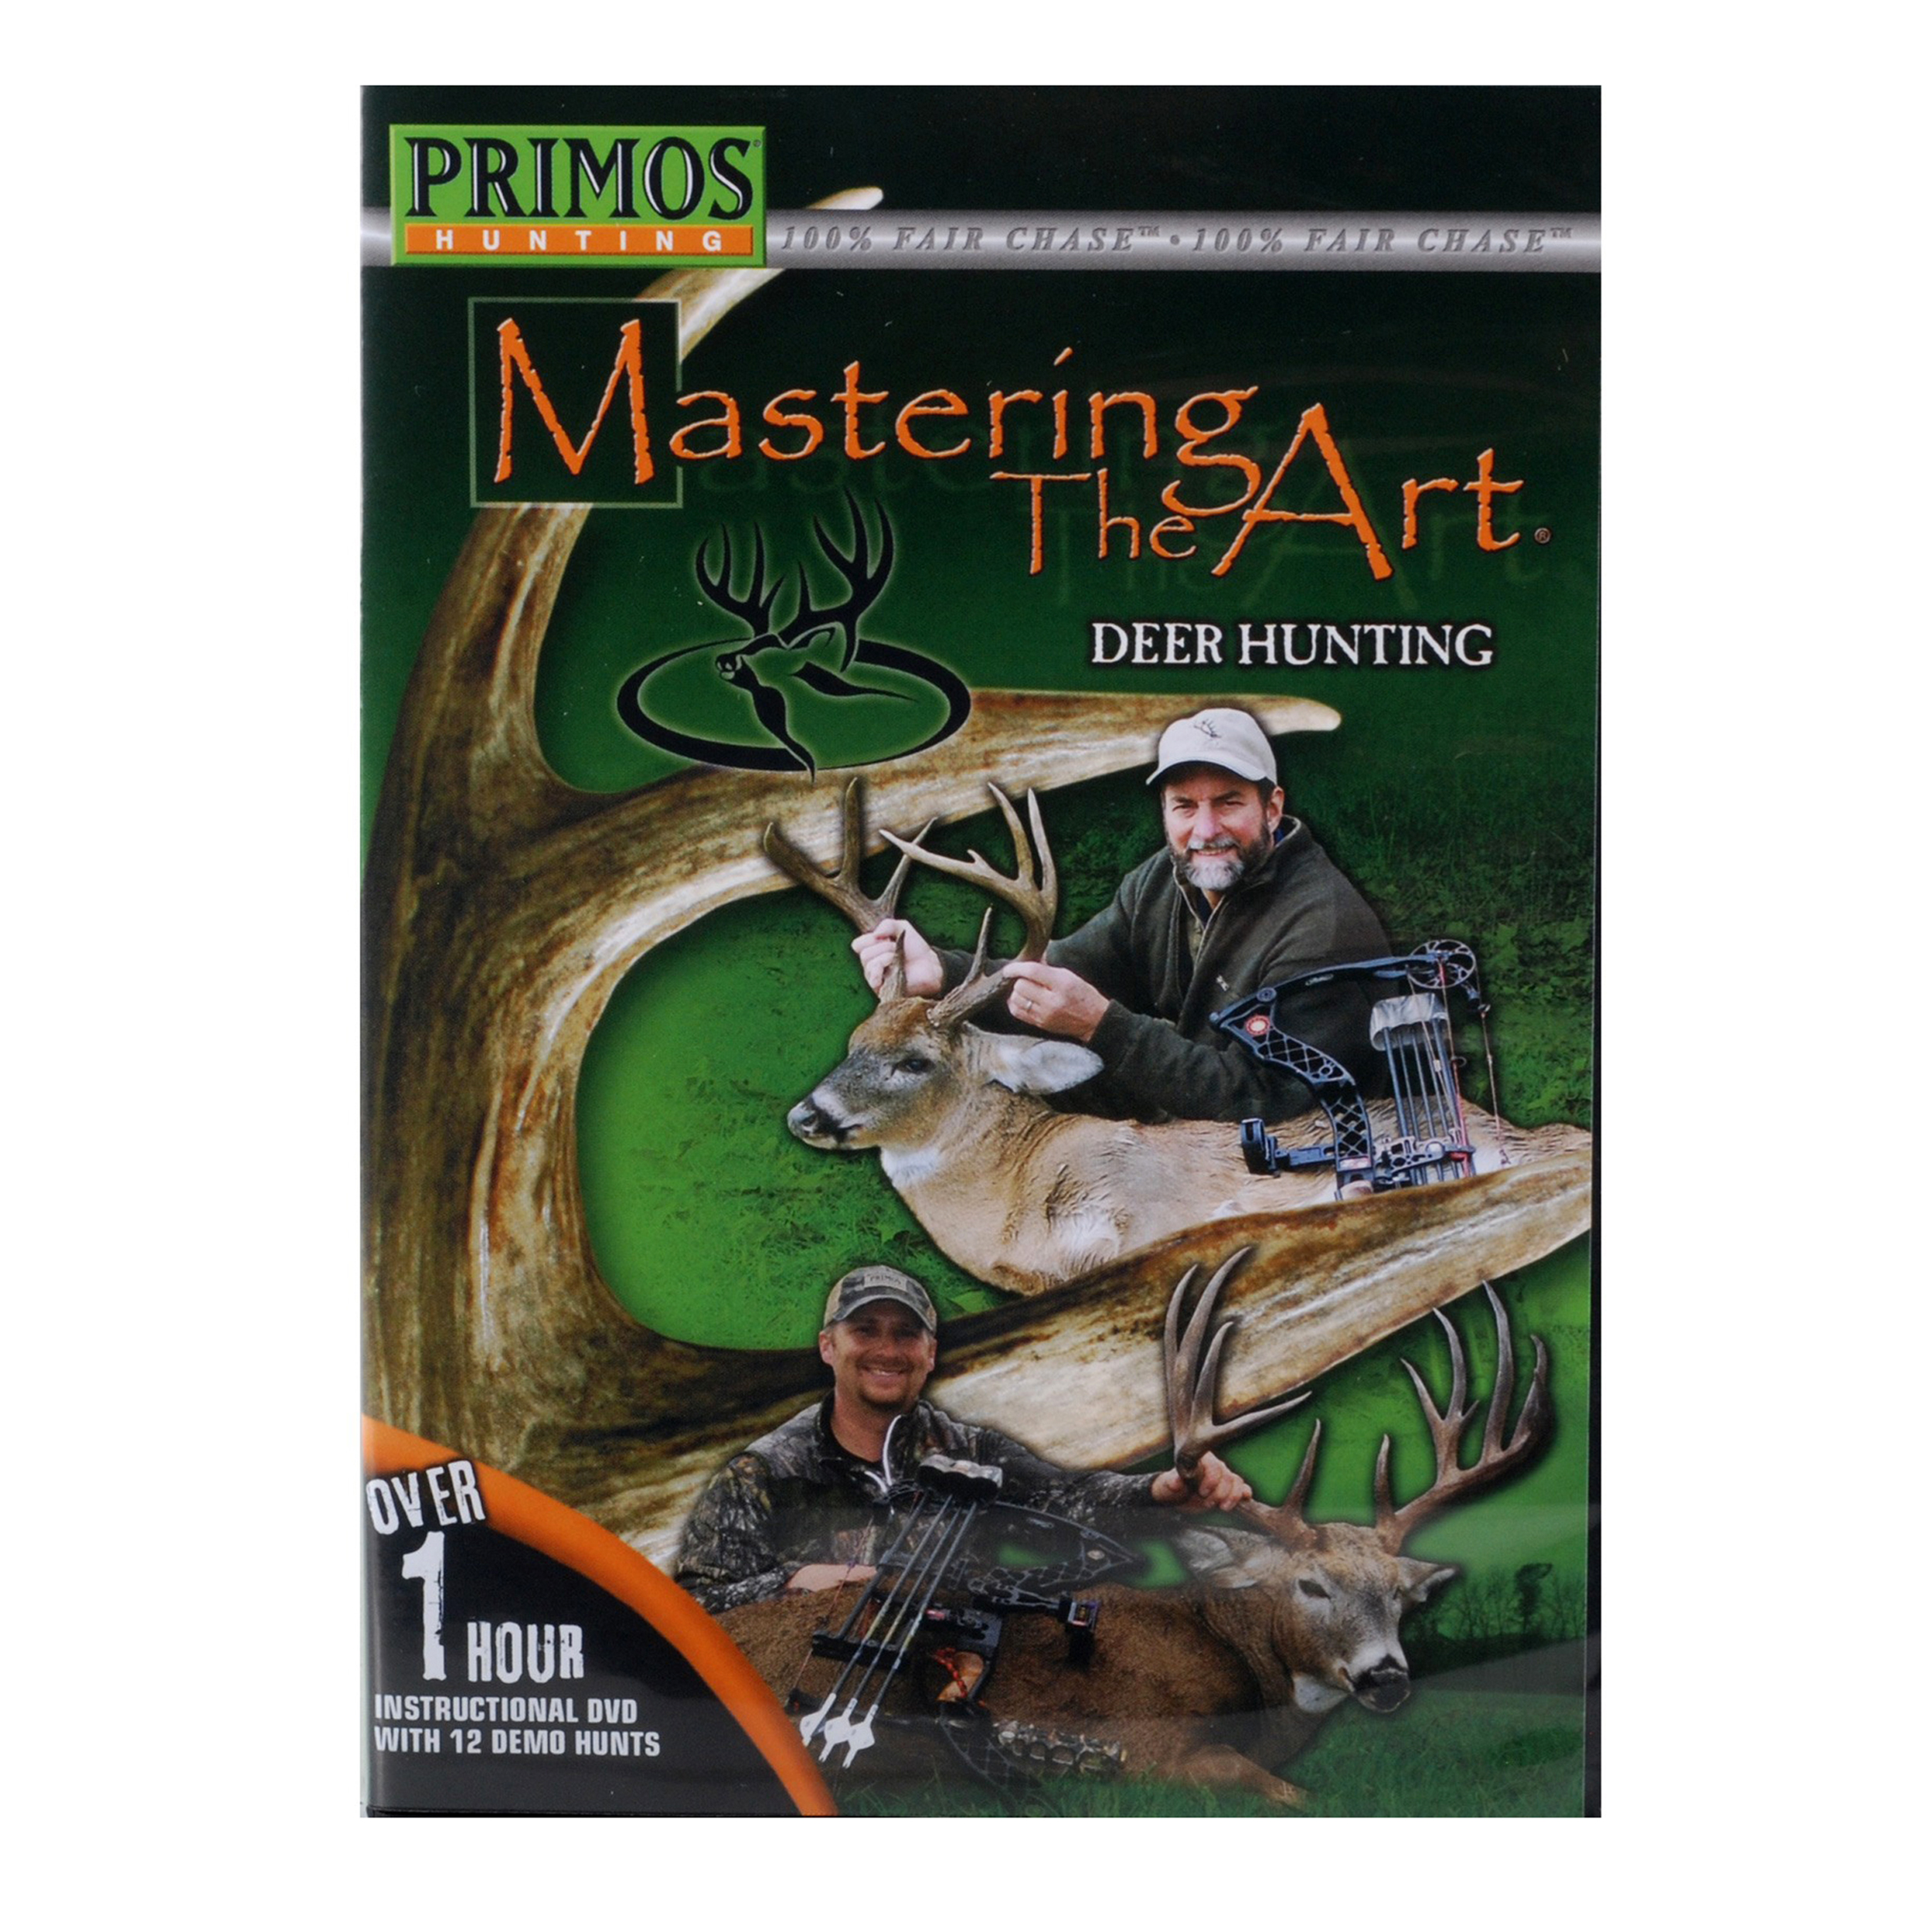 Primos Mastering The Art-Ground Blind Hunting DVD 44611 by Primos